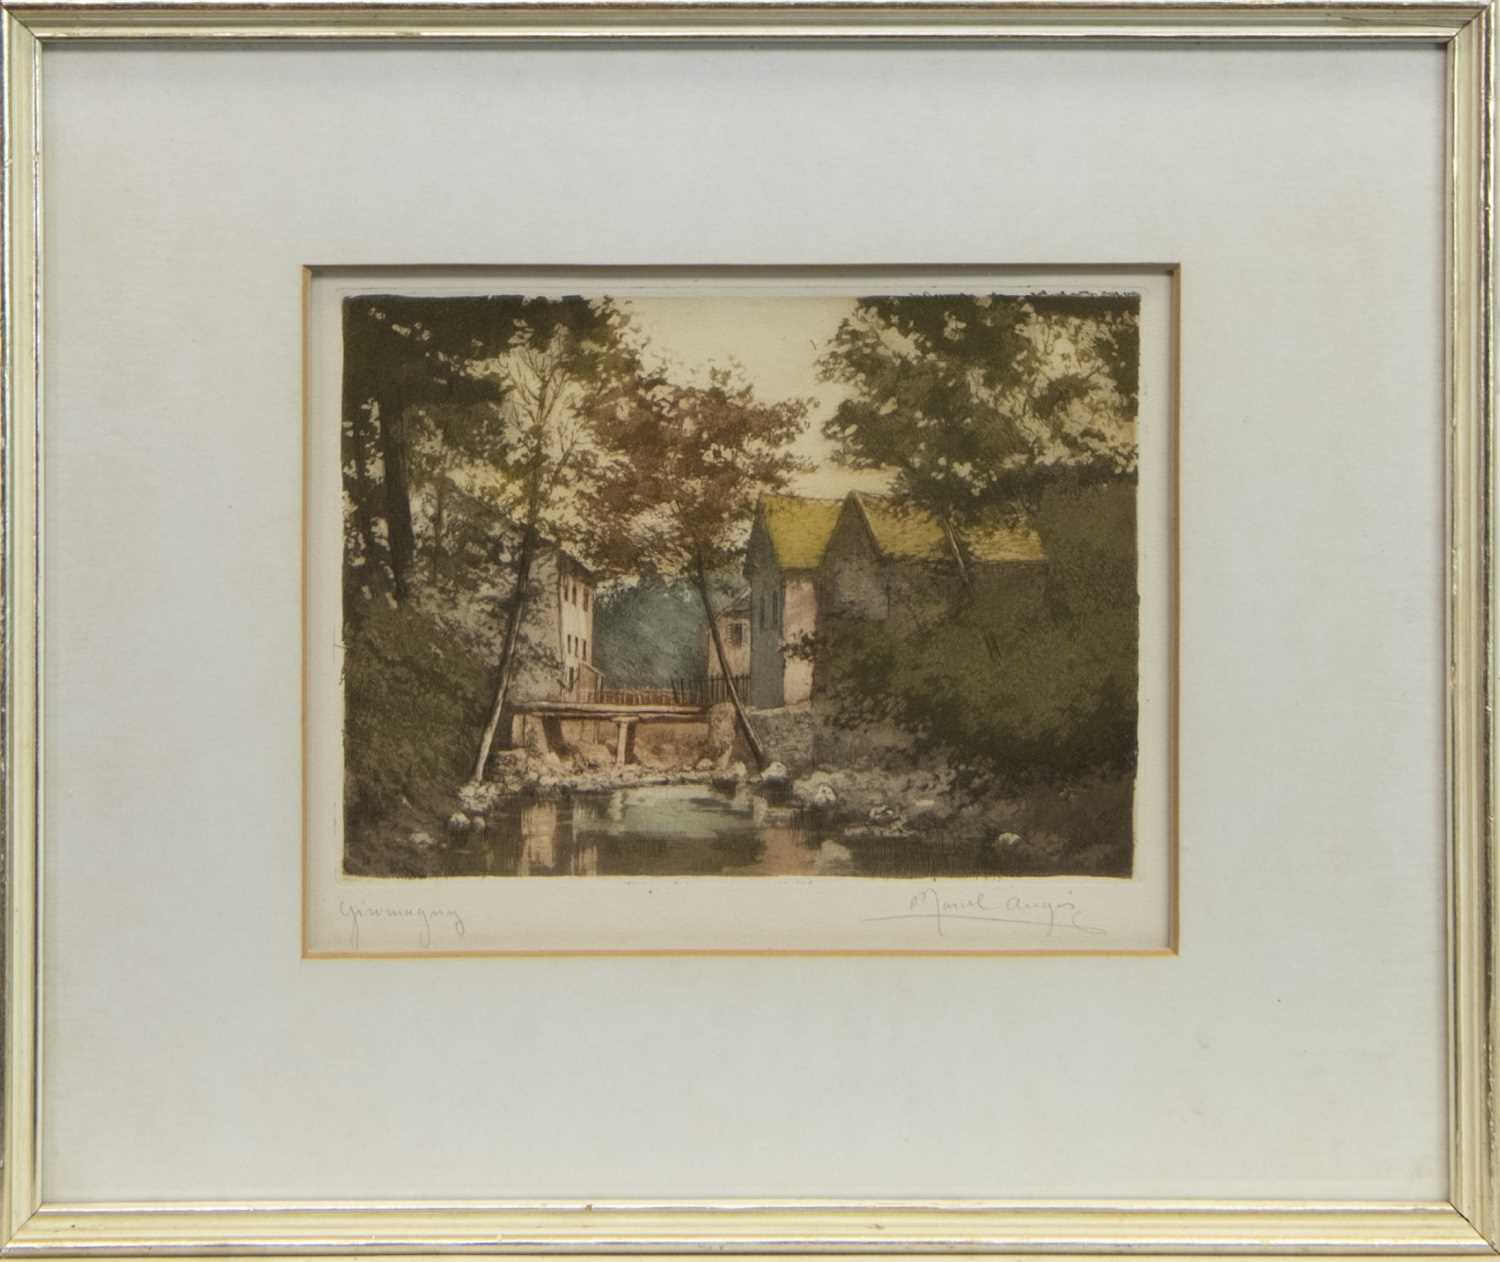 Lot 23 - GIROMAGNY, A PRINT BY MARCEL AUGIS